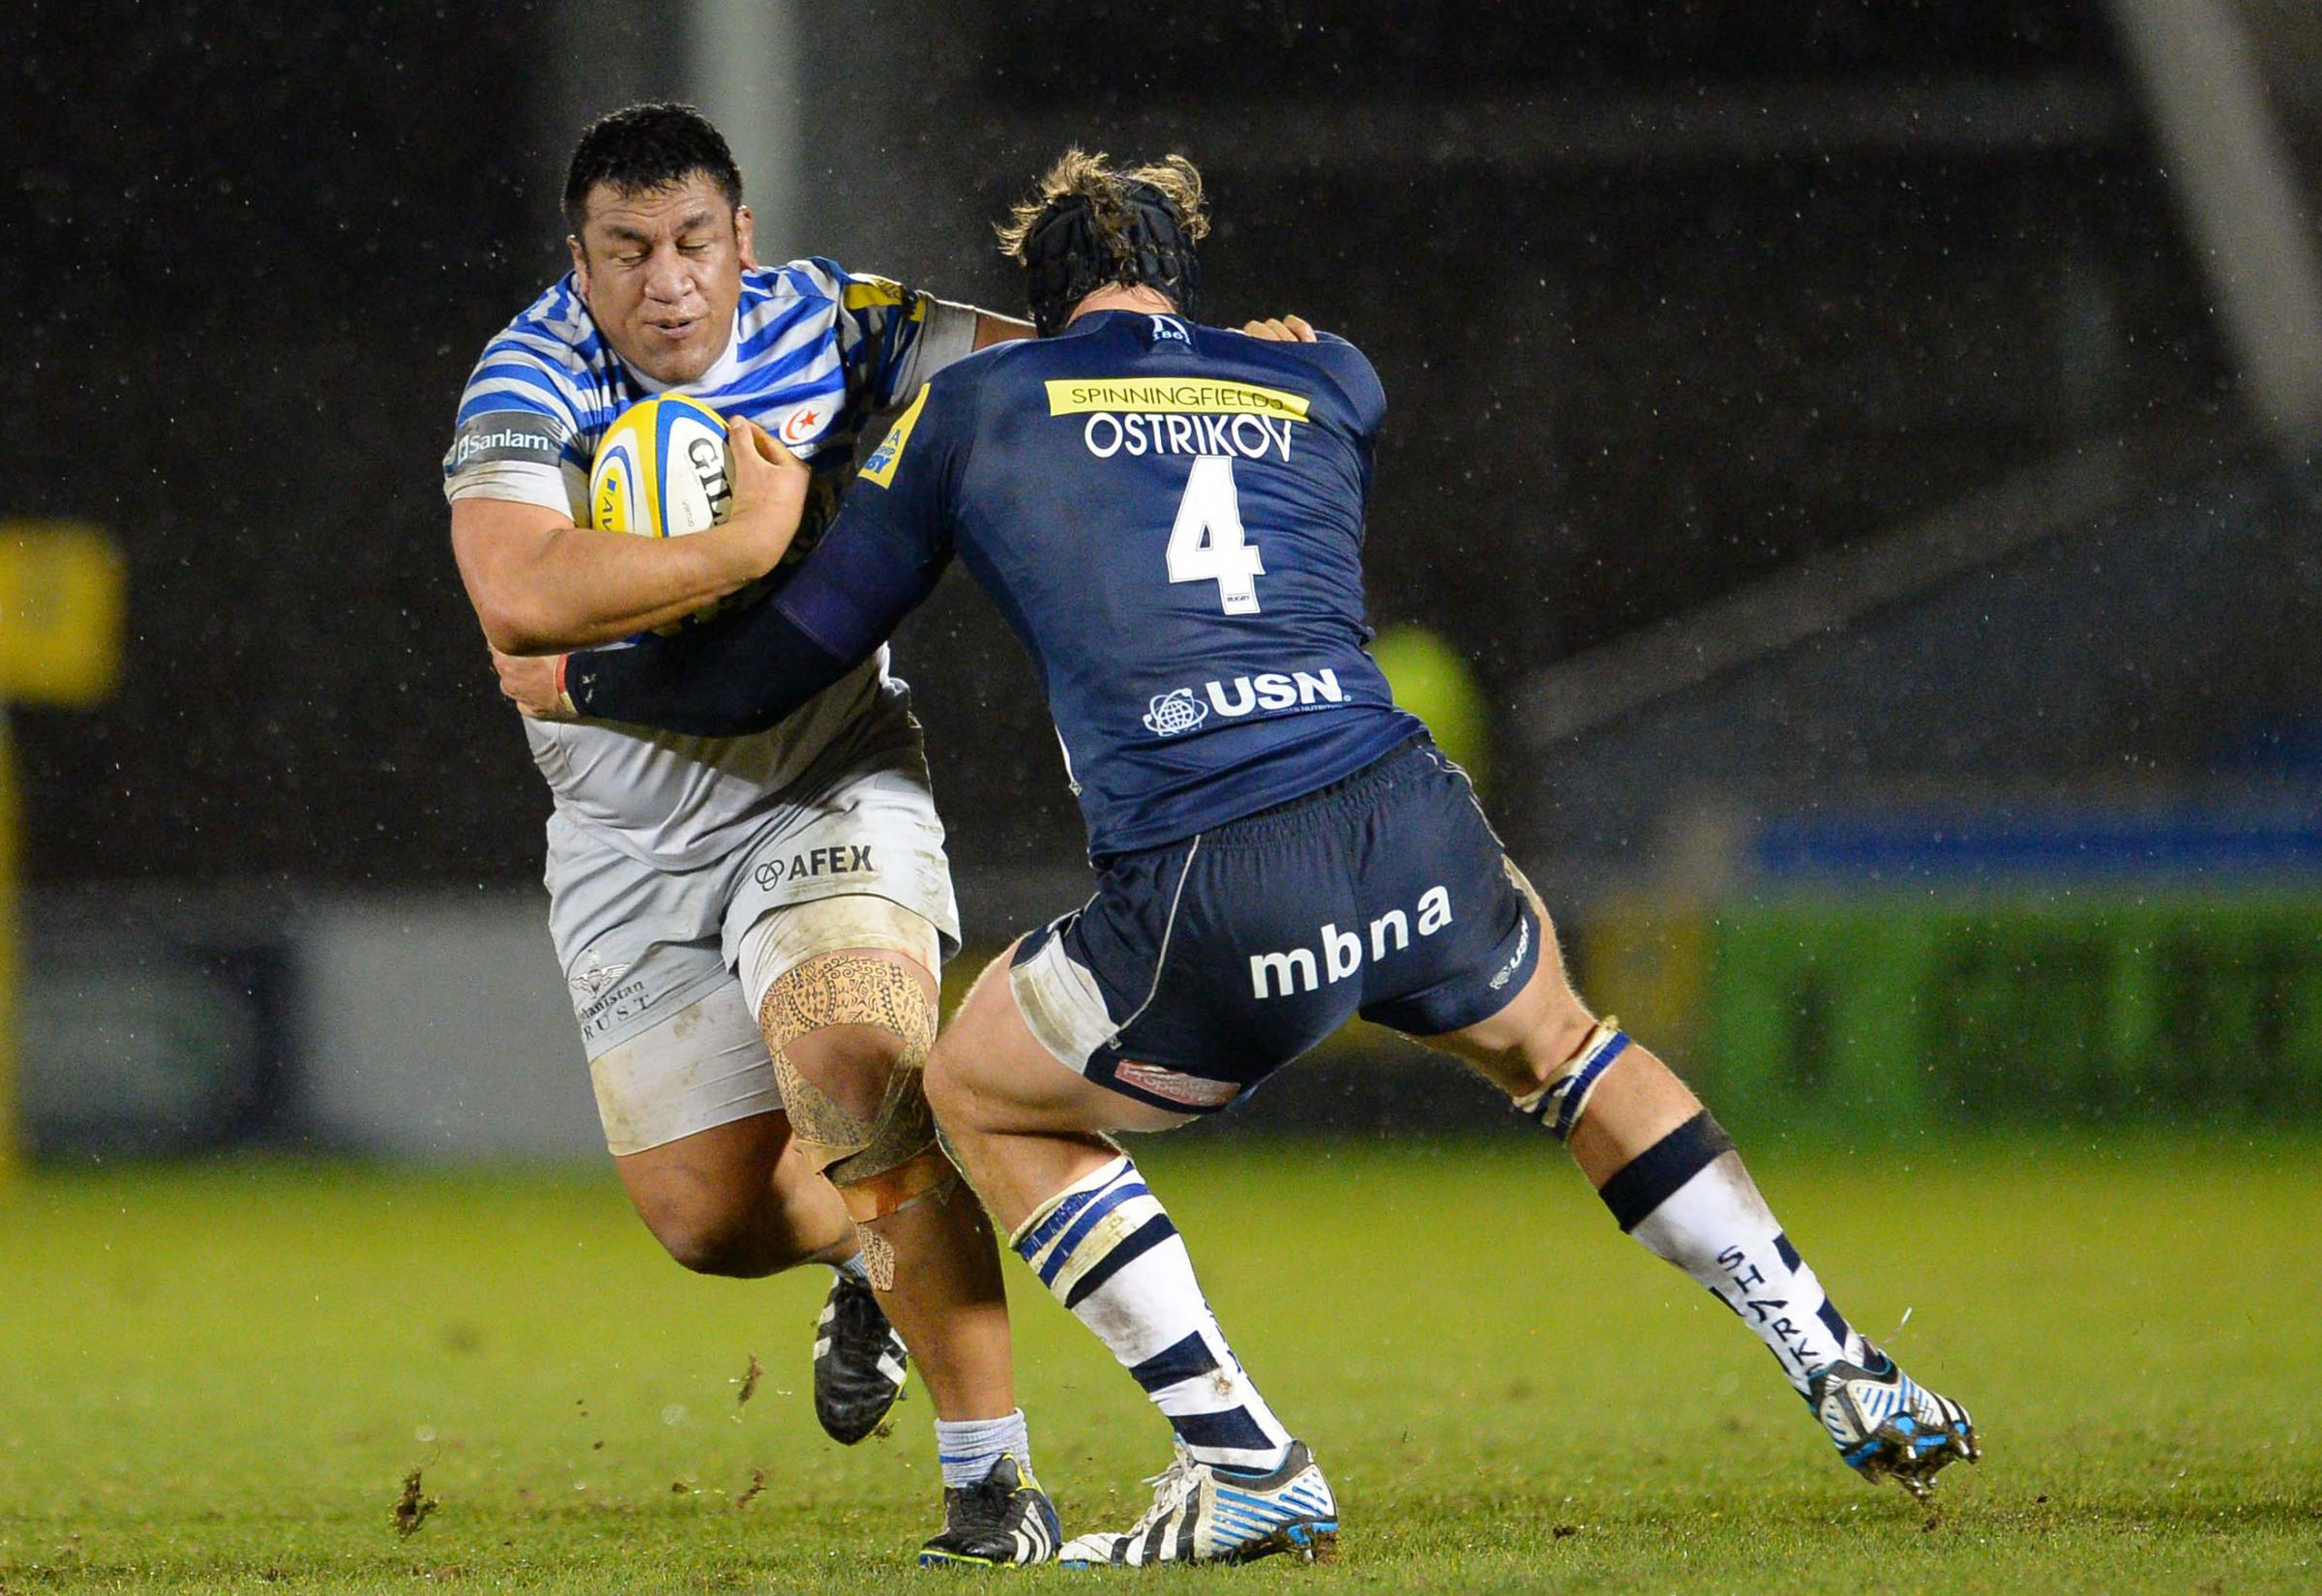 Saracens' Mako Vunipola in action with Sale Sharks' Andrei Ostrikov. Picture: Action Images